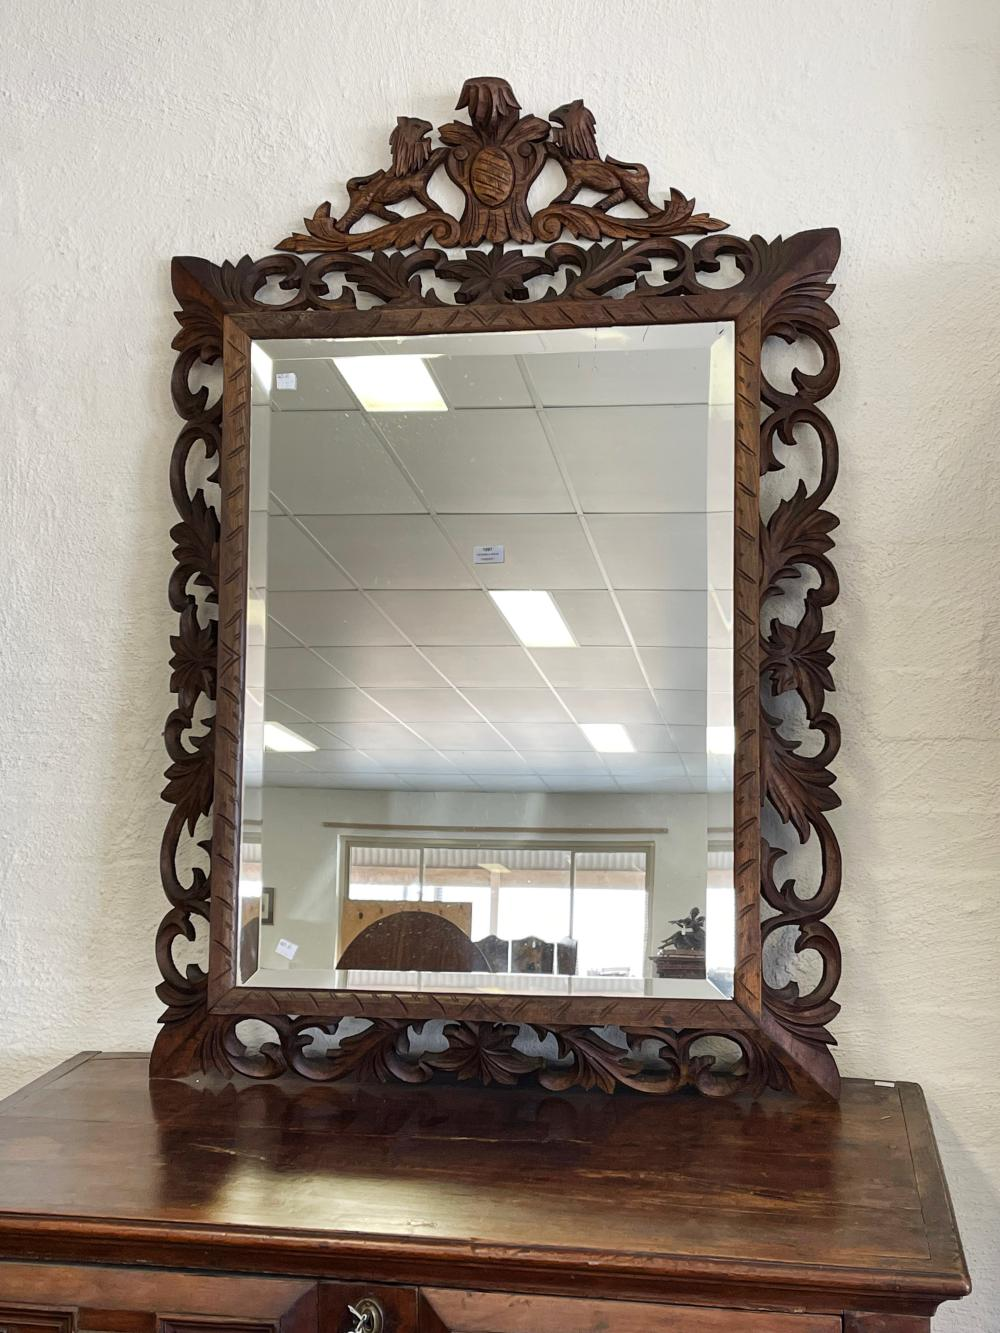 Antique French carved and pierced cushion shaped mirror, approx 128cm H x 86cm W